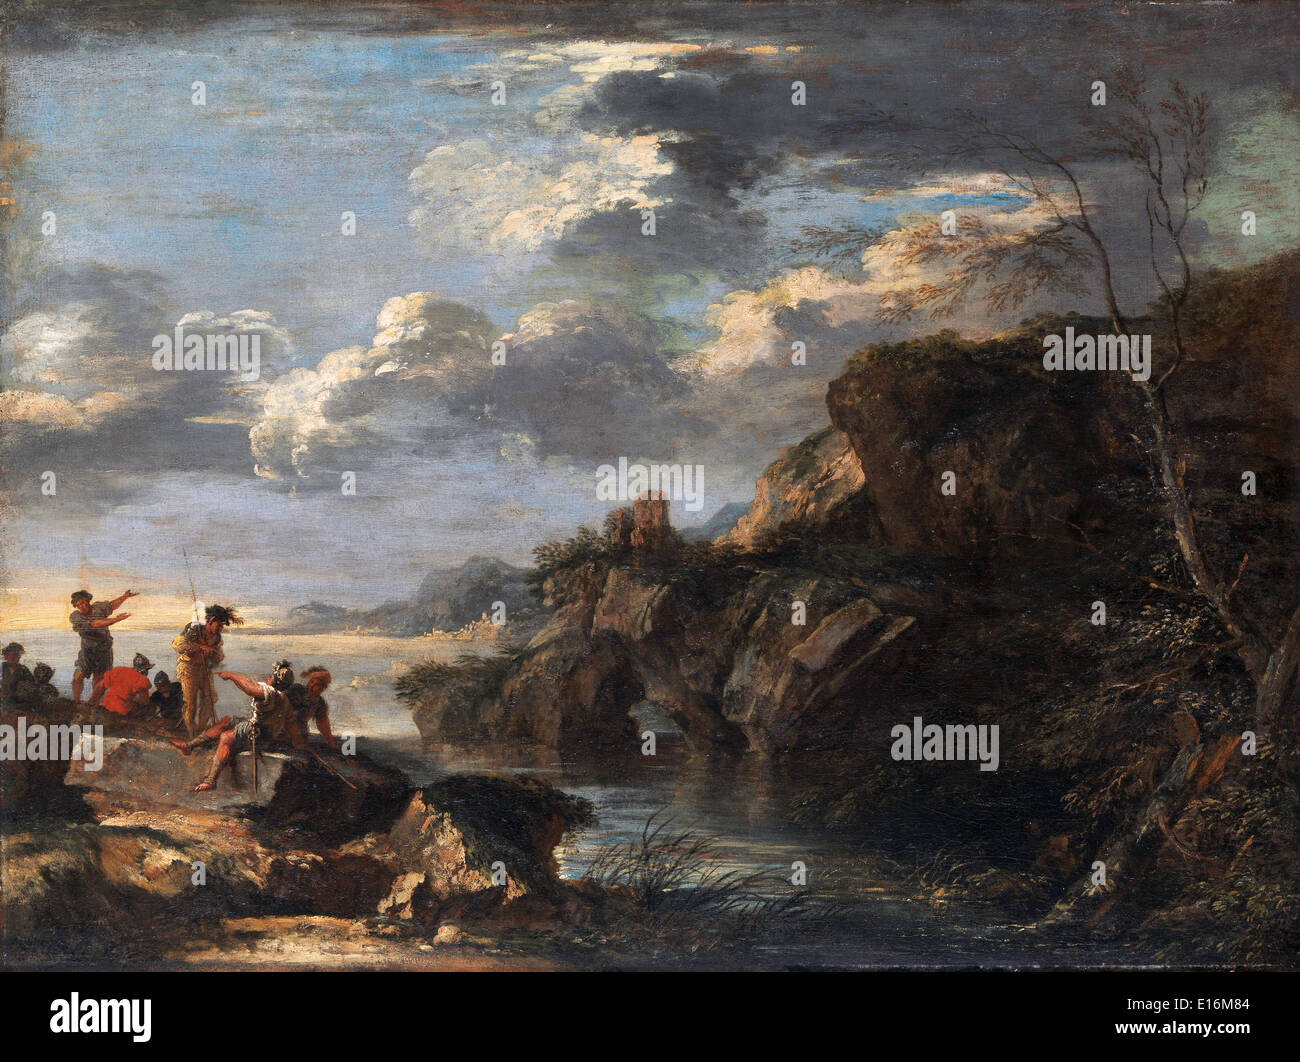 Bandits on Rocky Coast by Salvator Rosa, 1660 - Stock Image